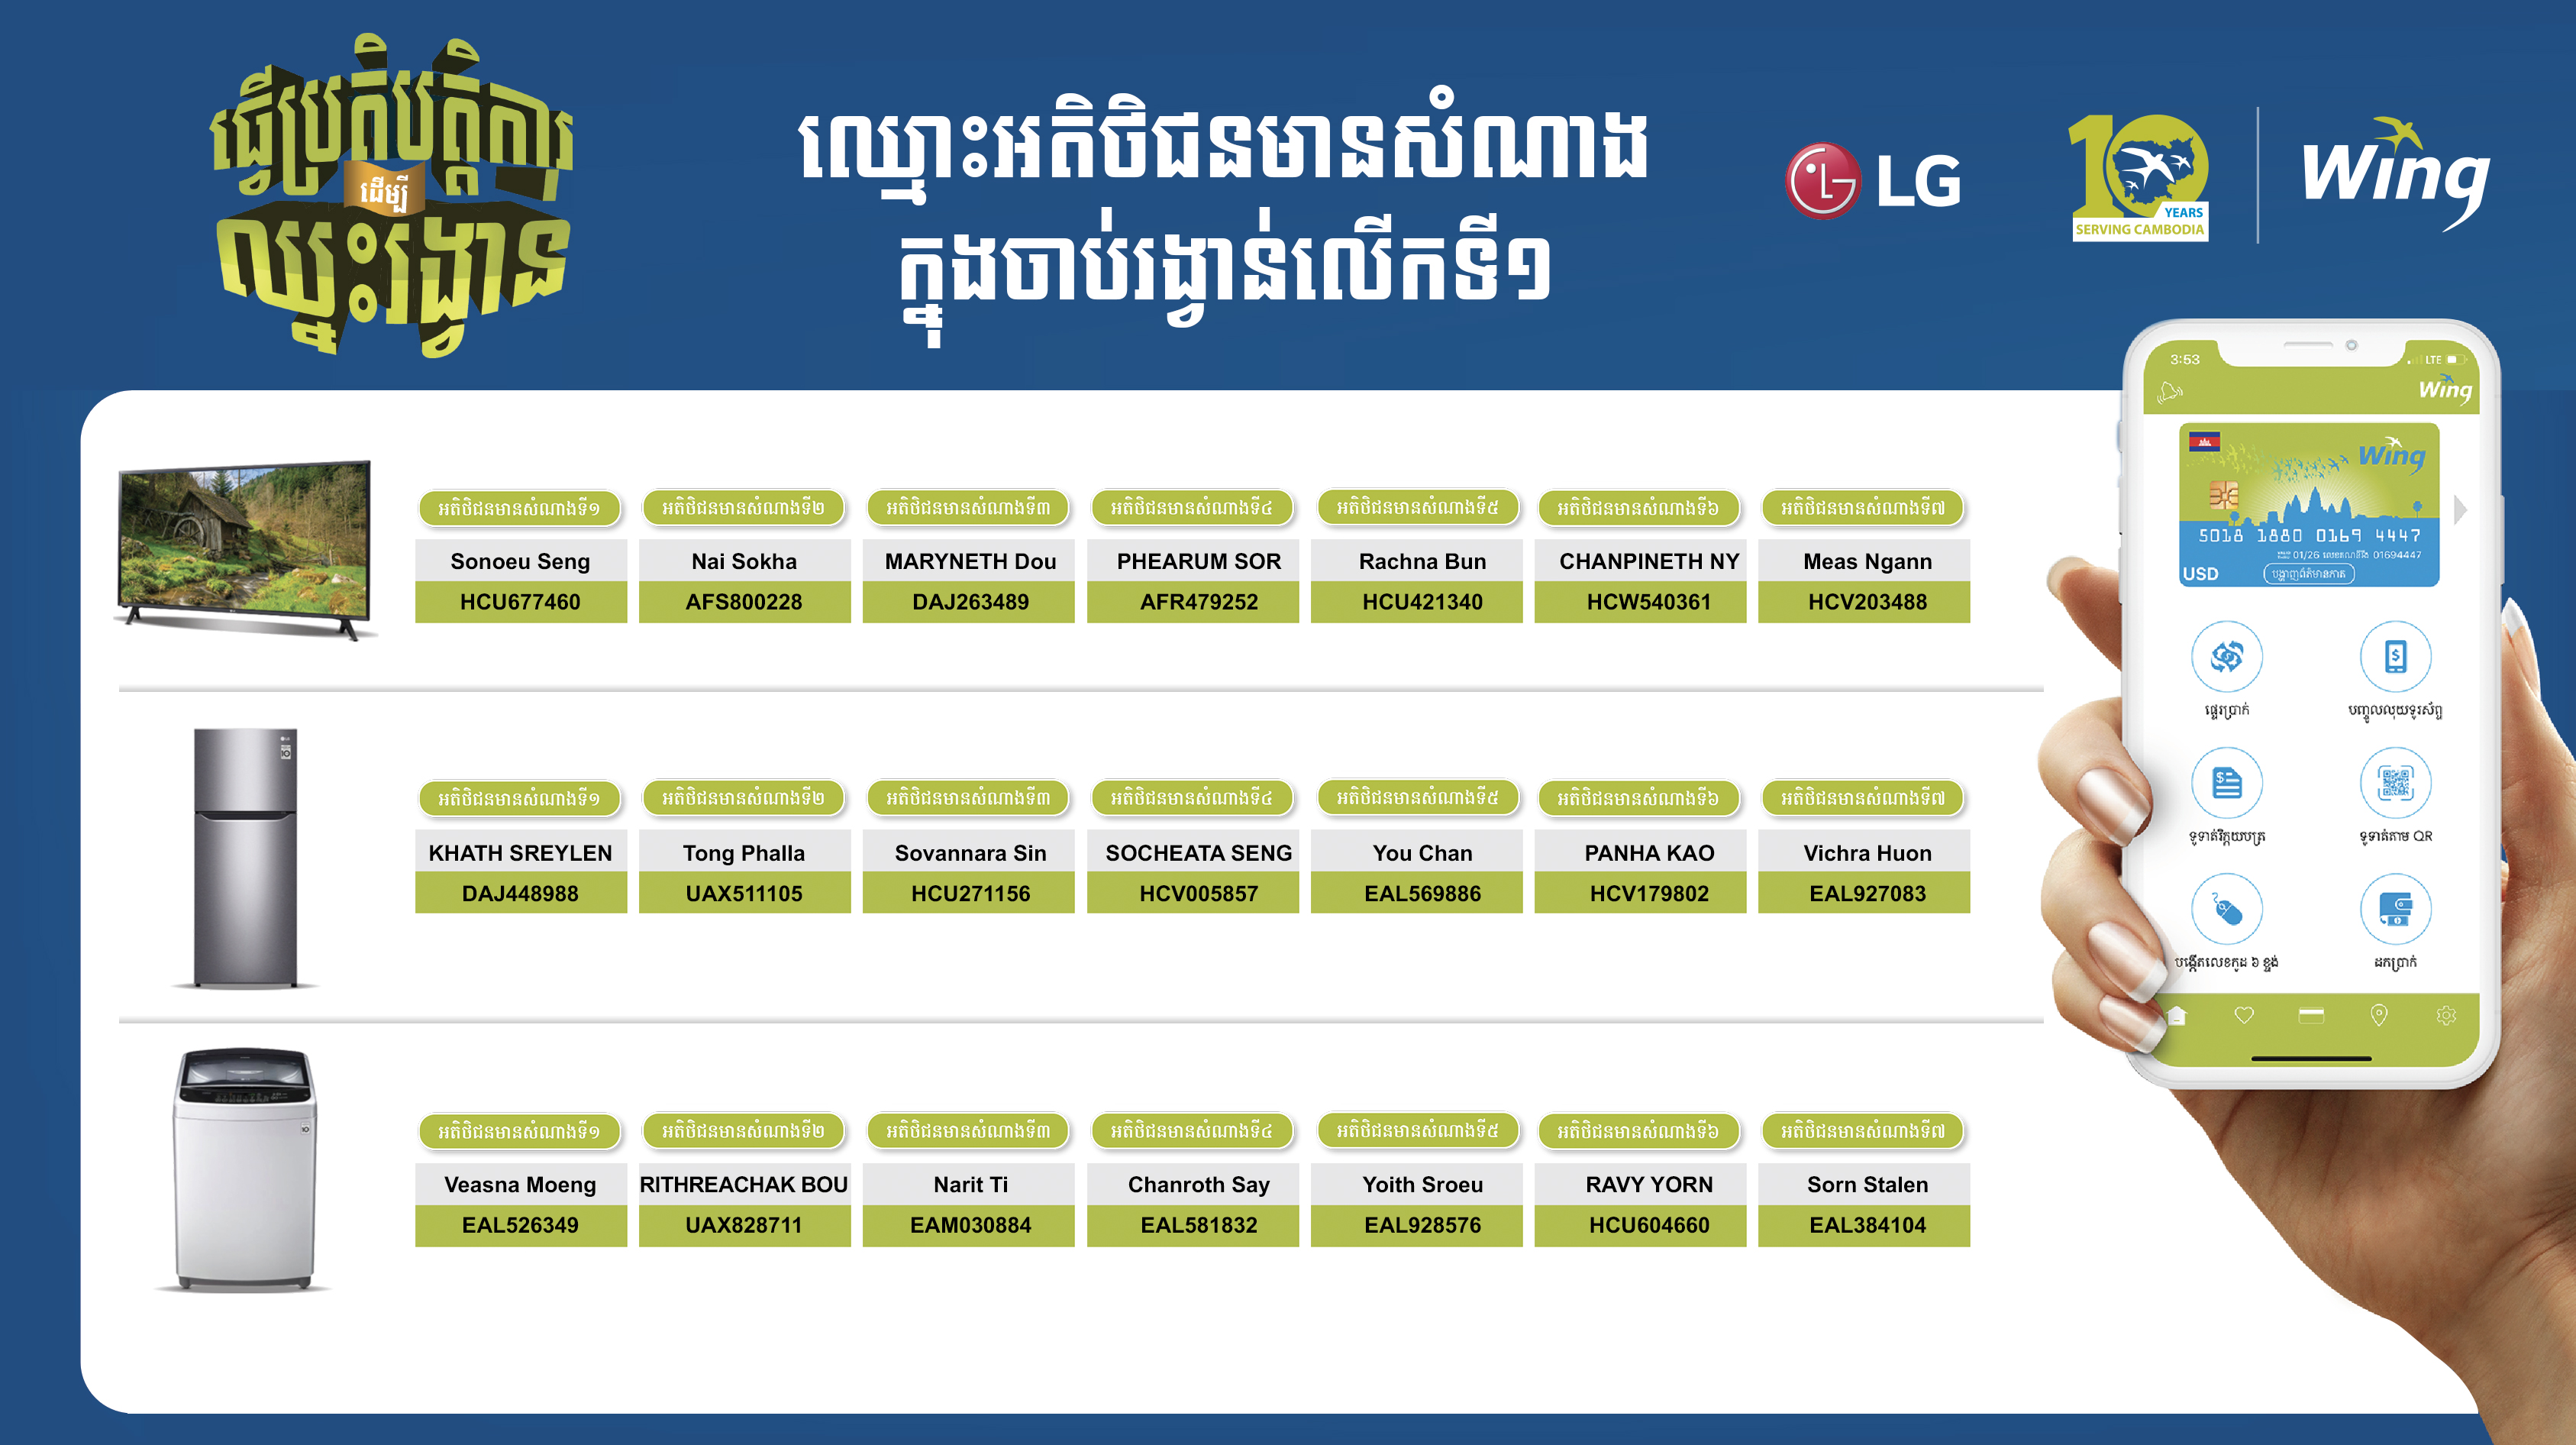 21 Cambodians Win Big Prizes from Wing Transact & Win Promotion | Wing